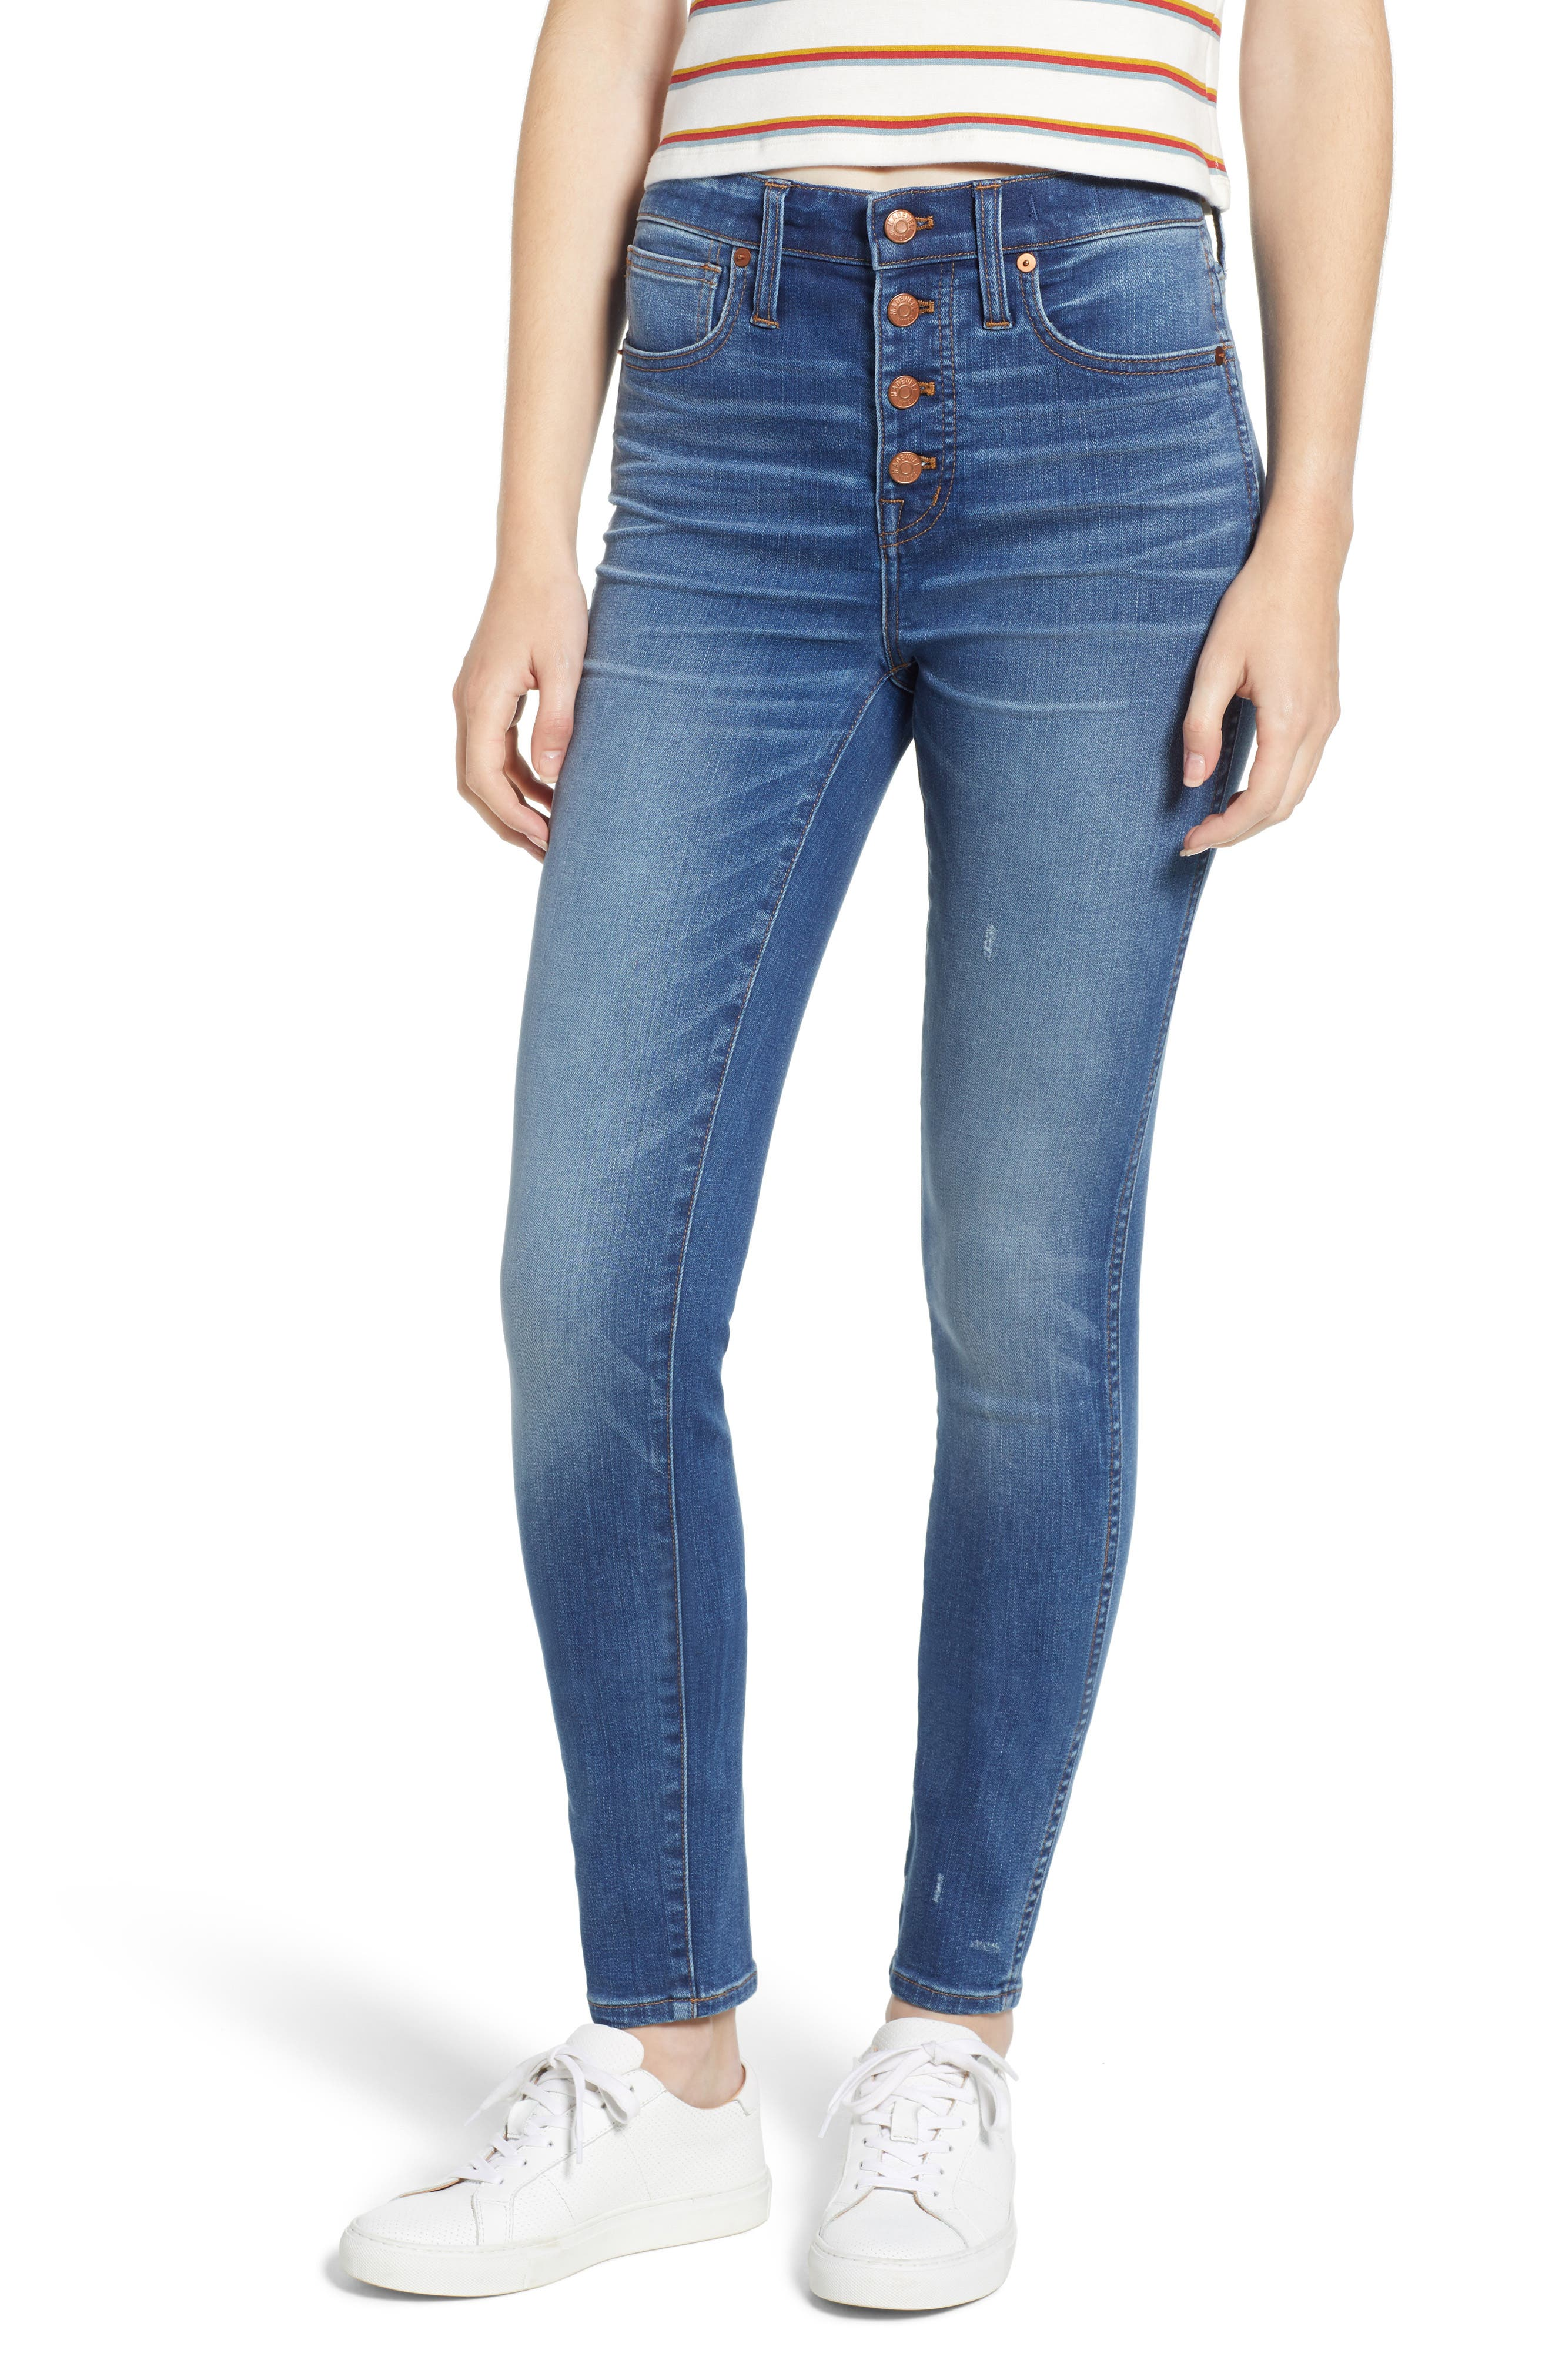 10-Inch High Waist Skinny Jeans,                             Main thumbnail 1, color,                             400